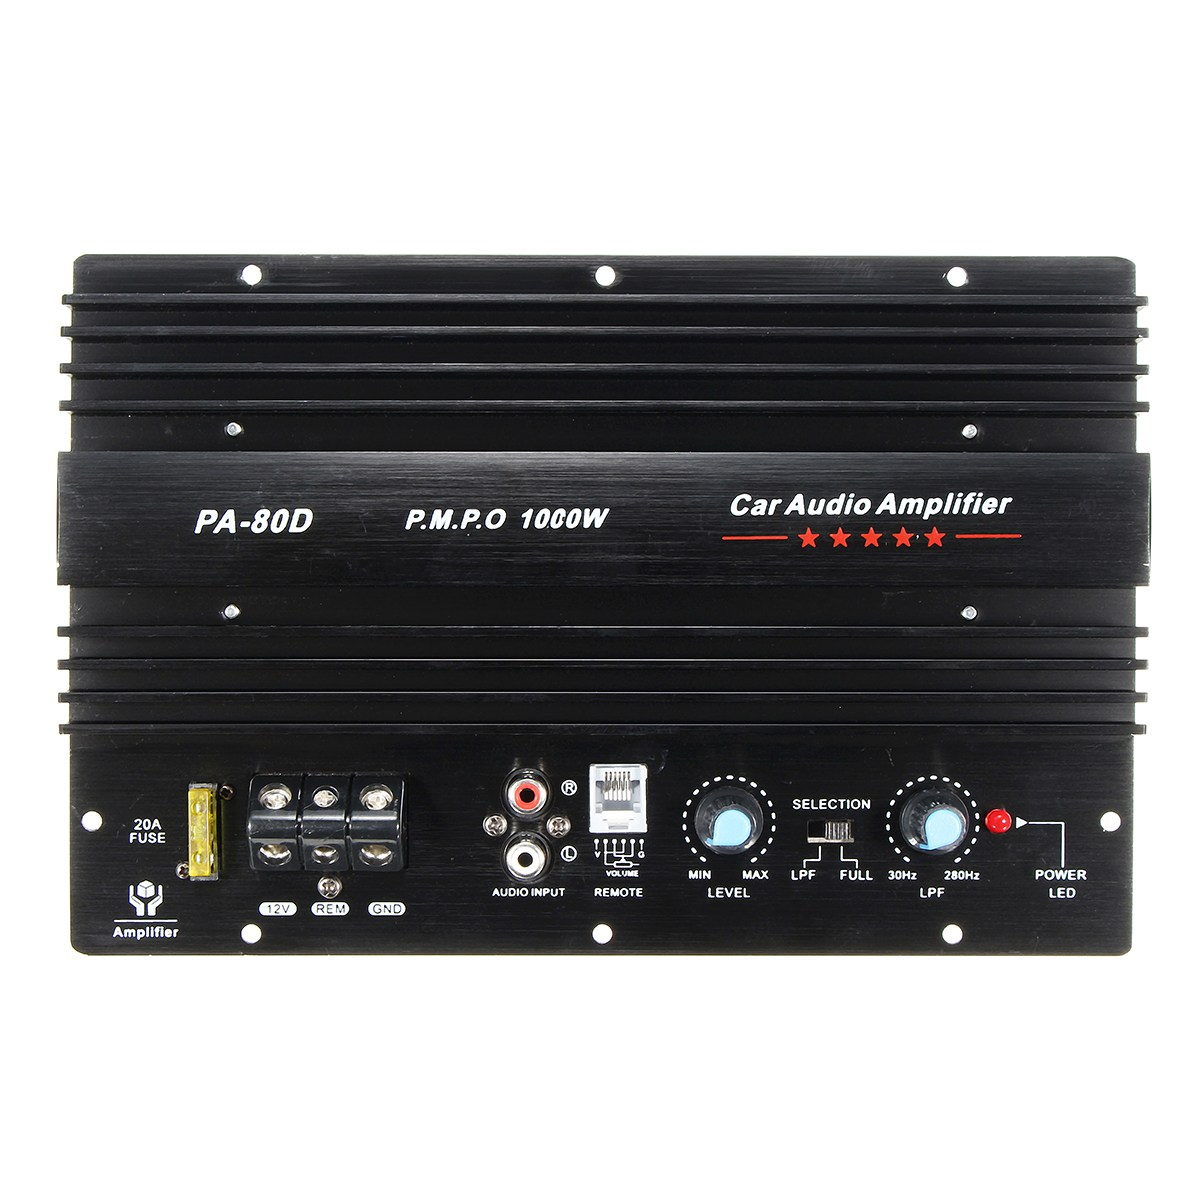 2018 NEW Arrival 12V 1000W Mono Car Audio Power Amplifier Powerful Bass Subwoofers Amp PA-80D